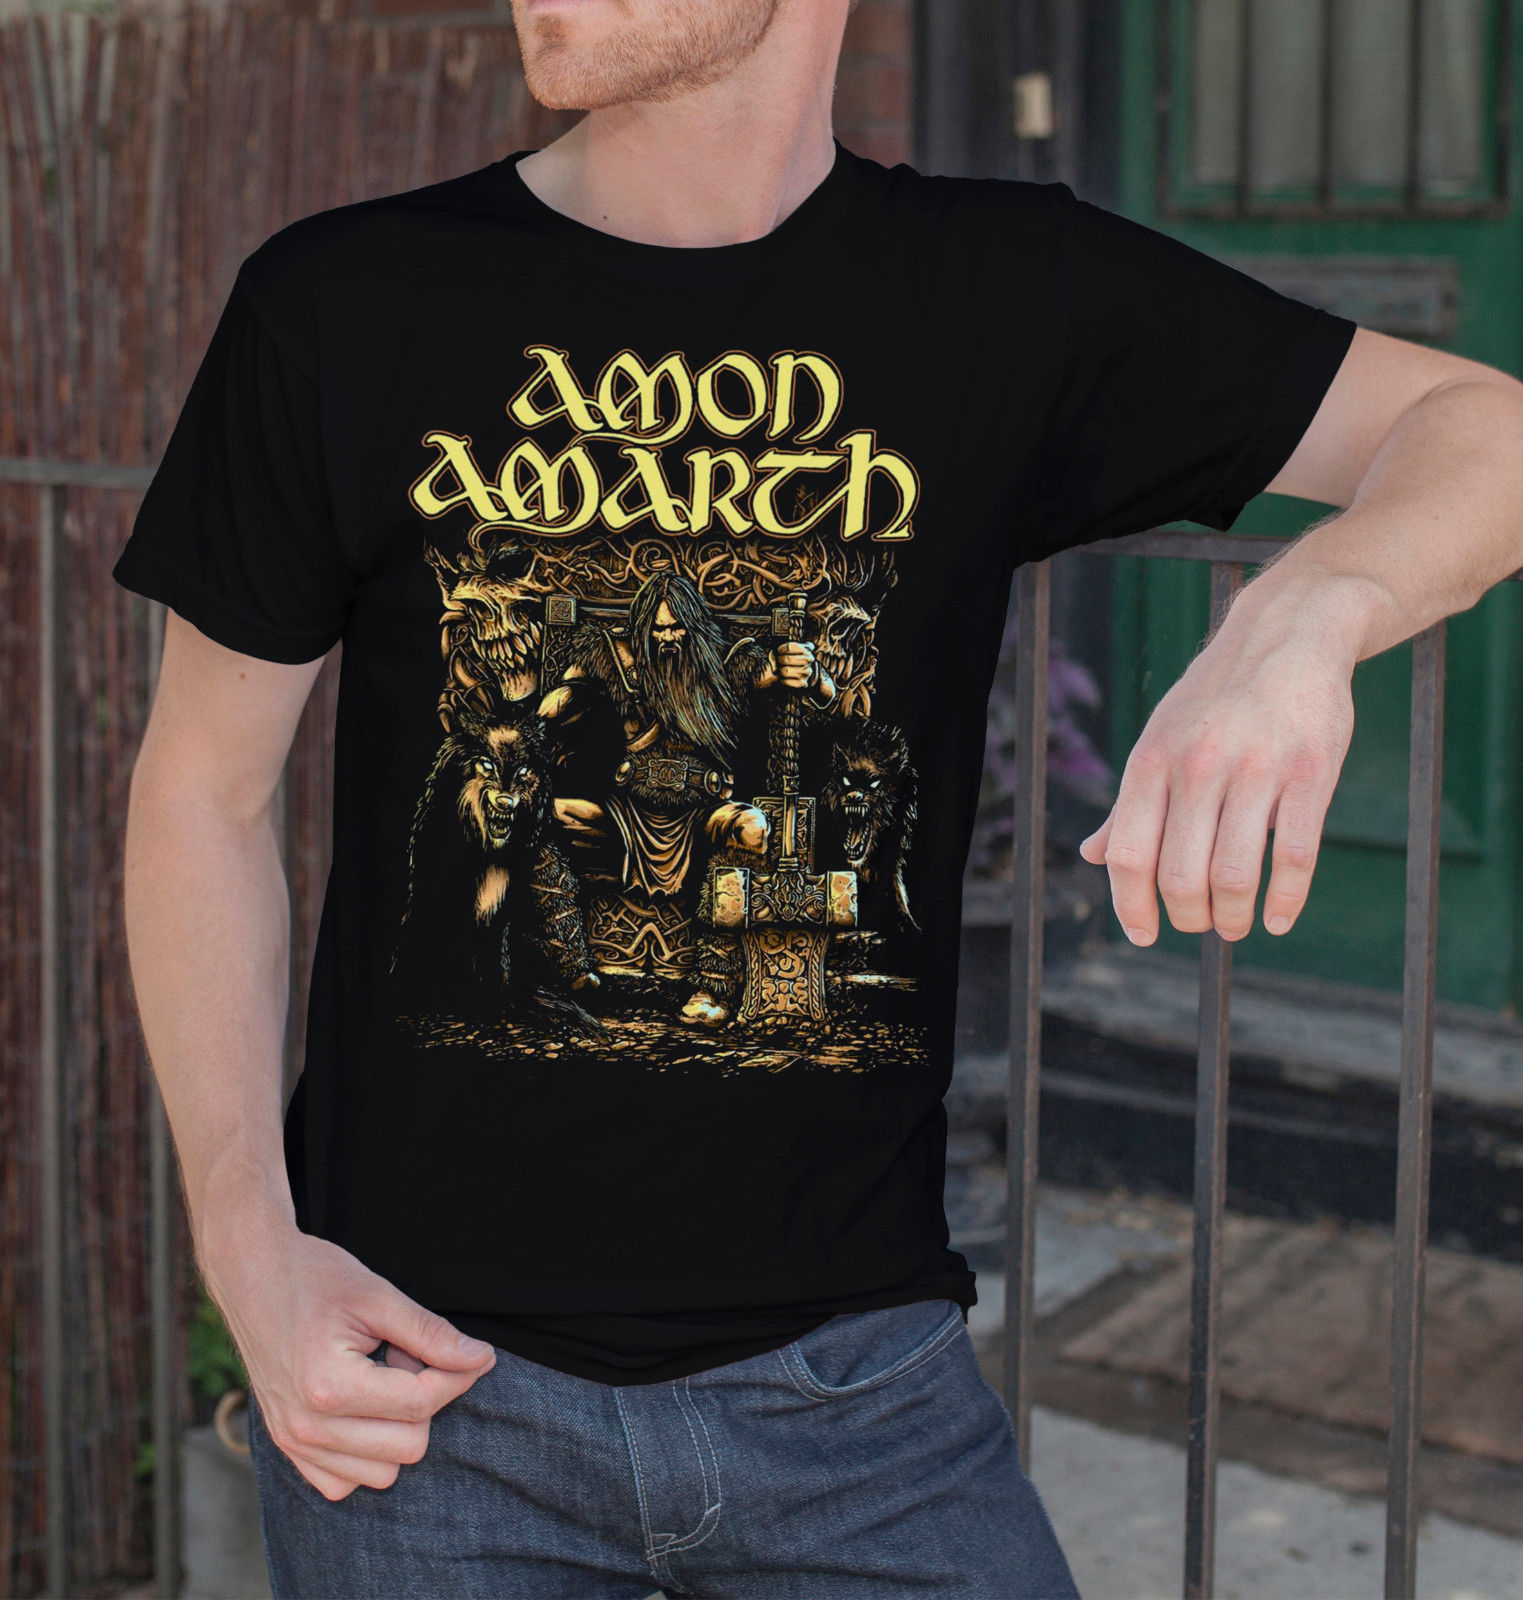 Amon Amarth Men Black T Shirt Death Metal Band Tee Shirt Vikings Swedish Metal Short Sleeves New Fashion T Shirt Men Clothing in T Shirts from Men 39 s Clothing